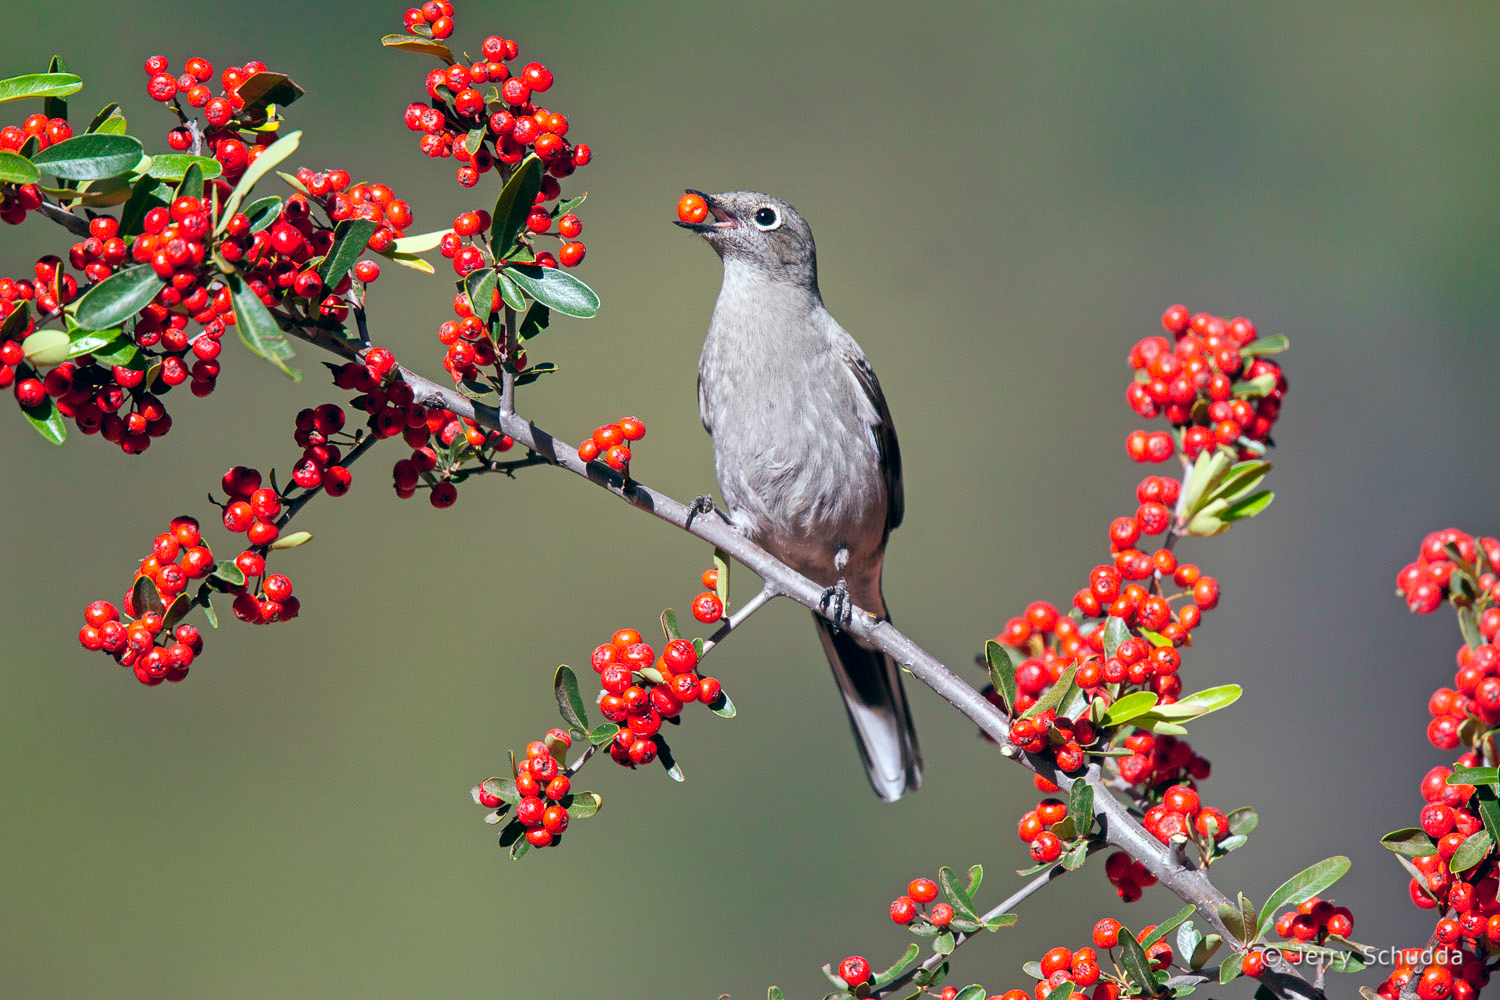 Townsend's Solitaire 2